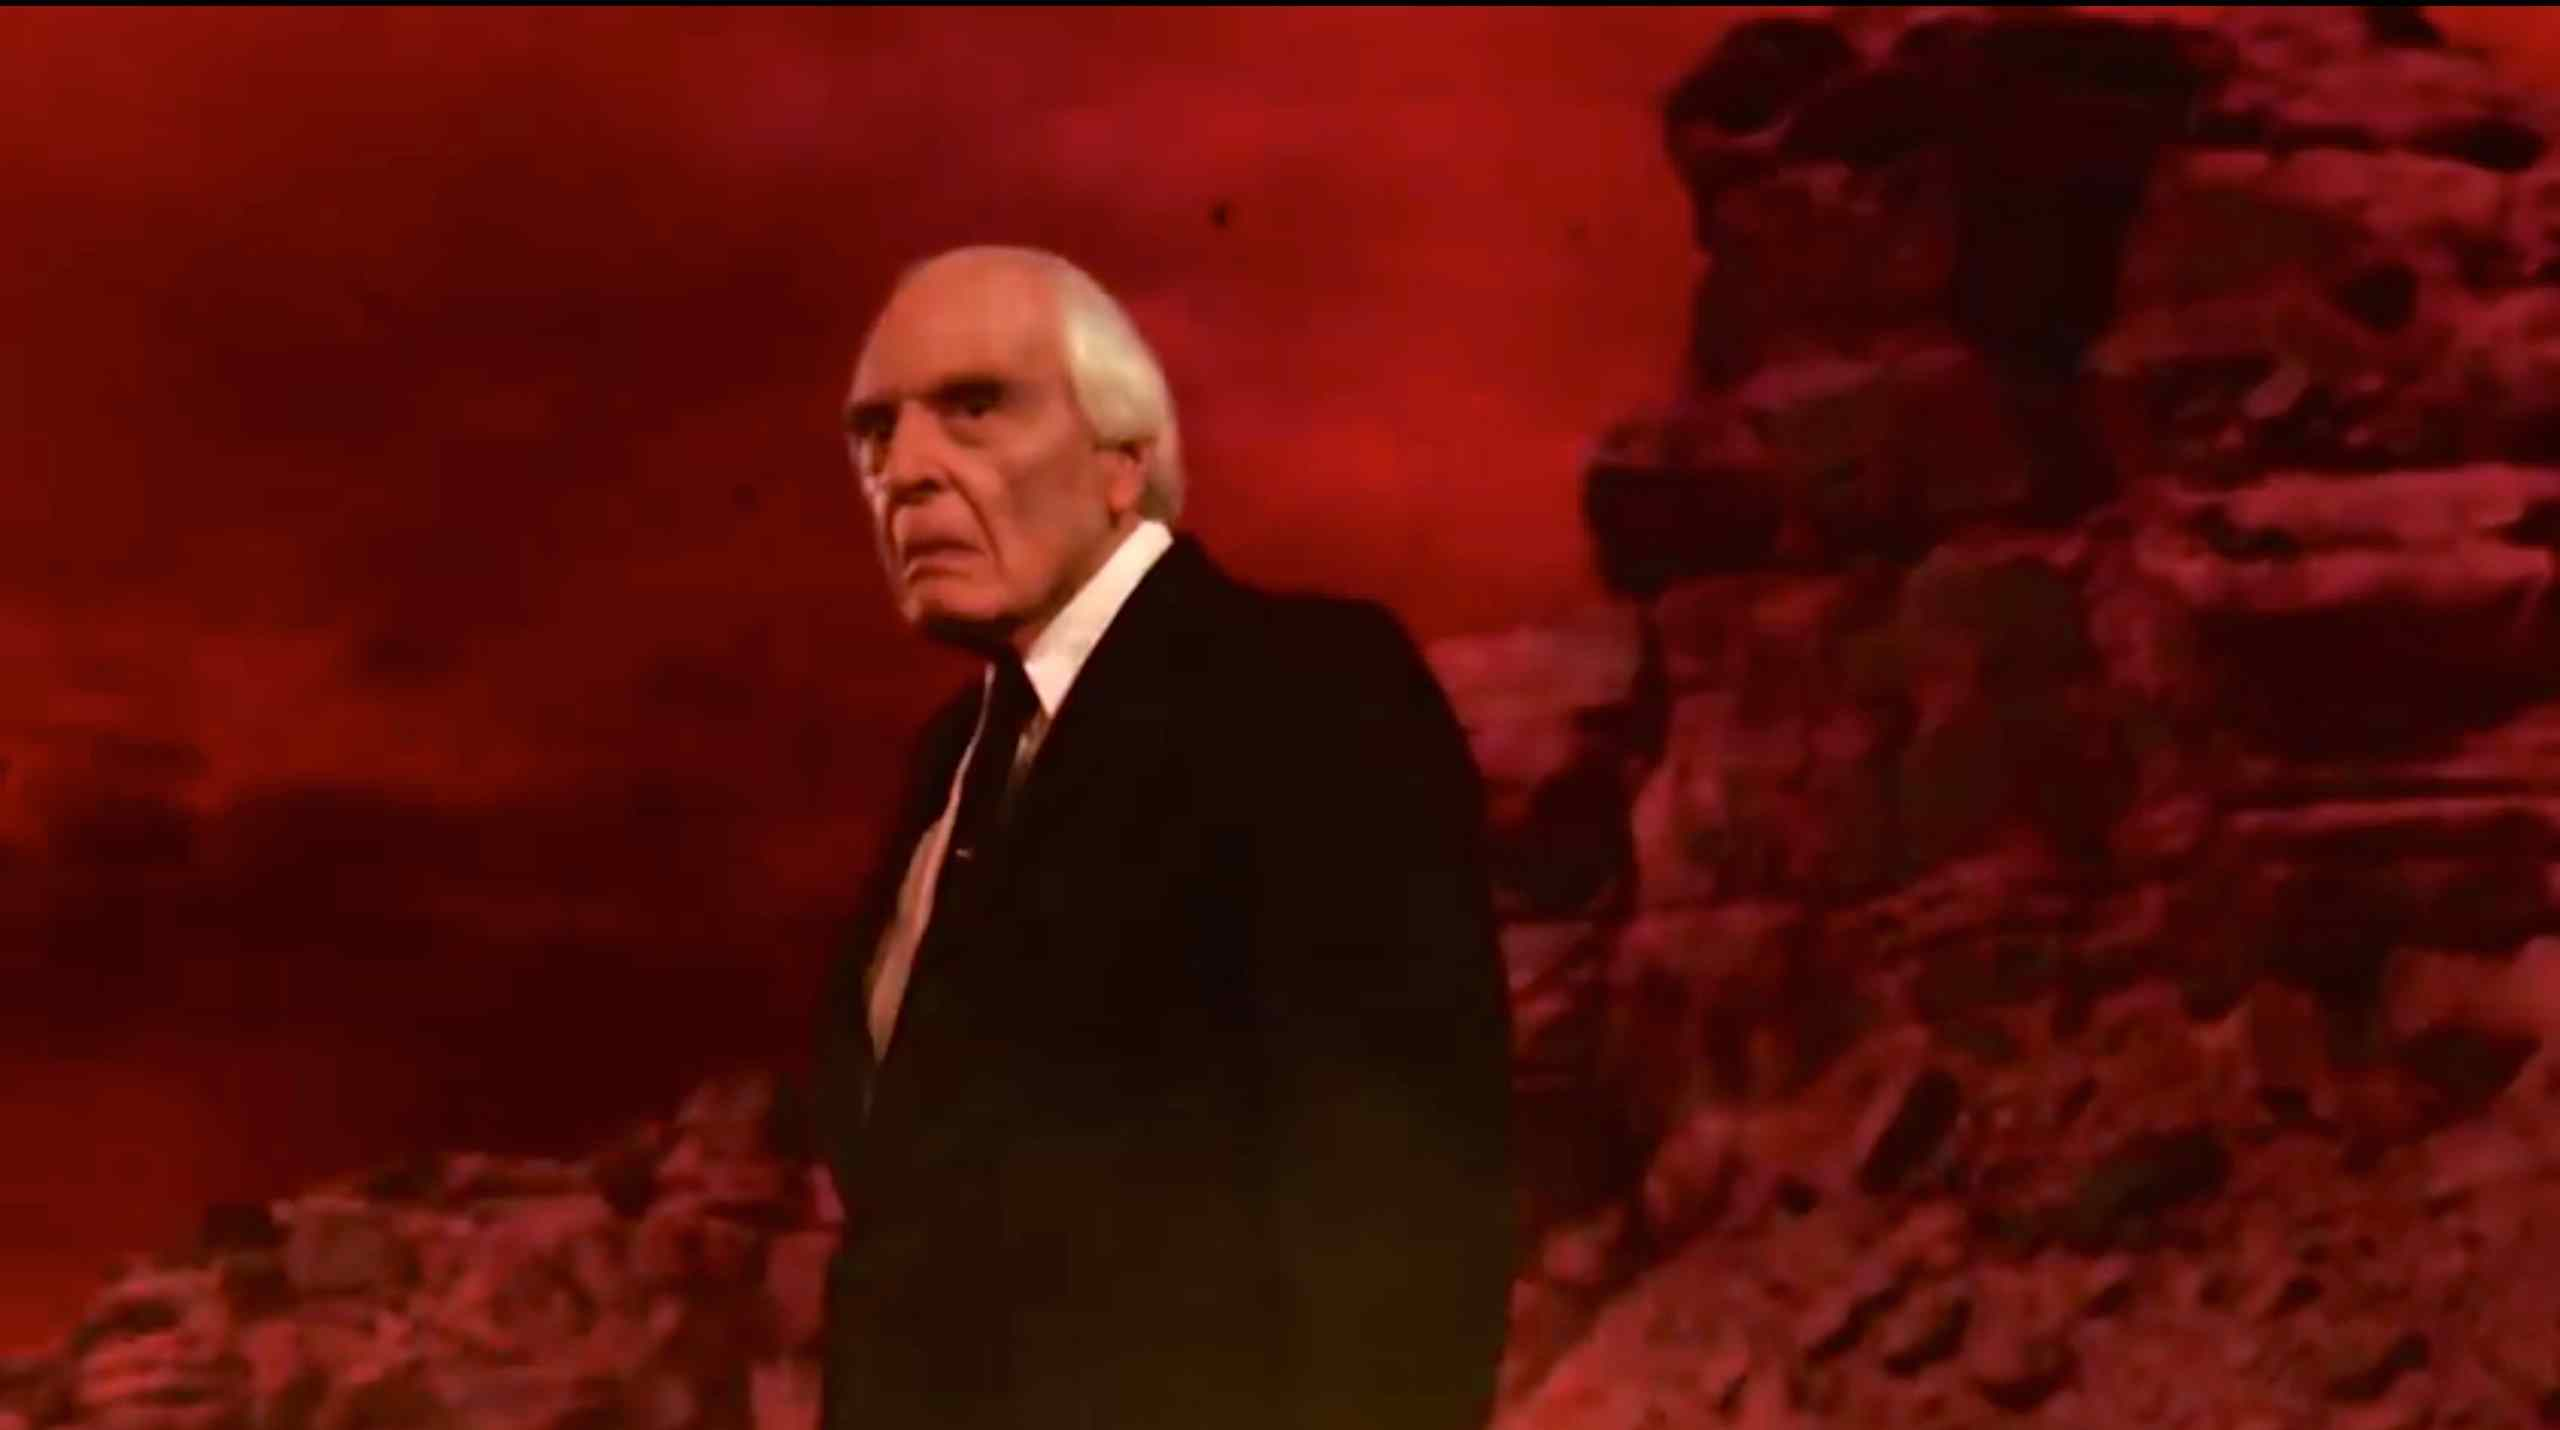 The Tall Man (Angus Scrimm) is up to his old tricks in David Hartman's Phantasm: Ravager.